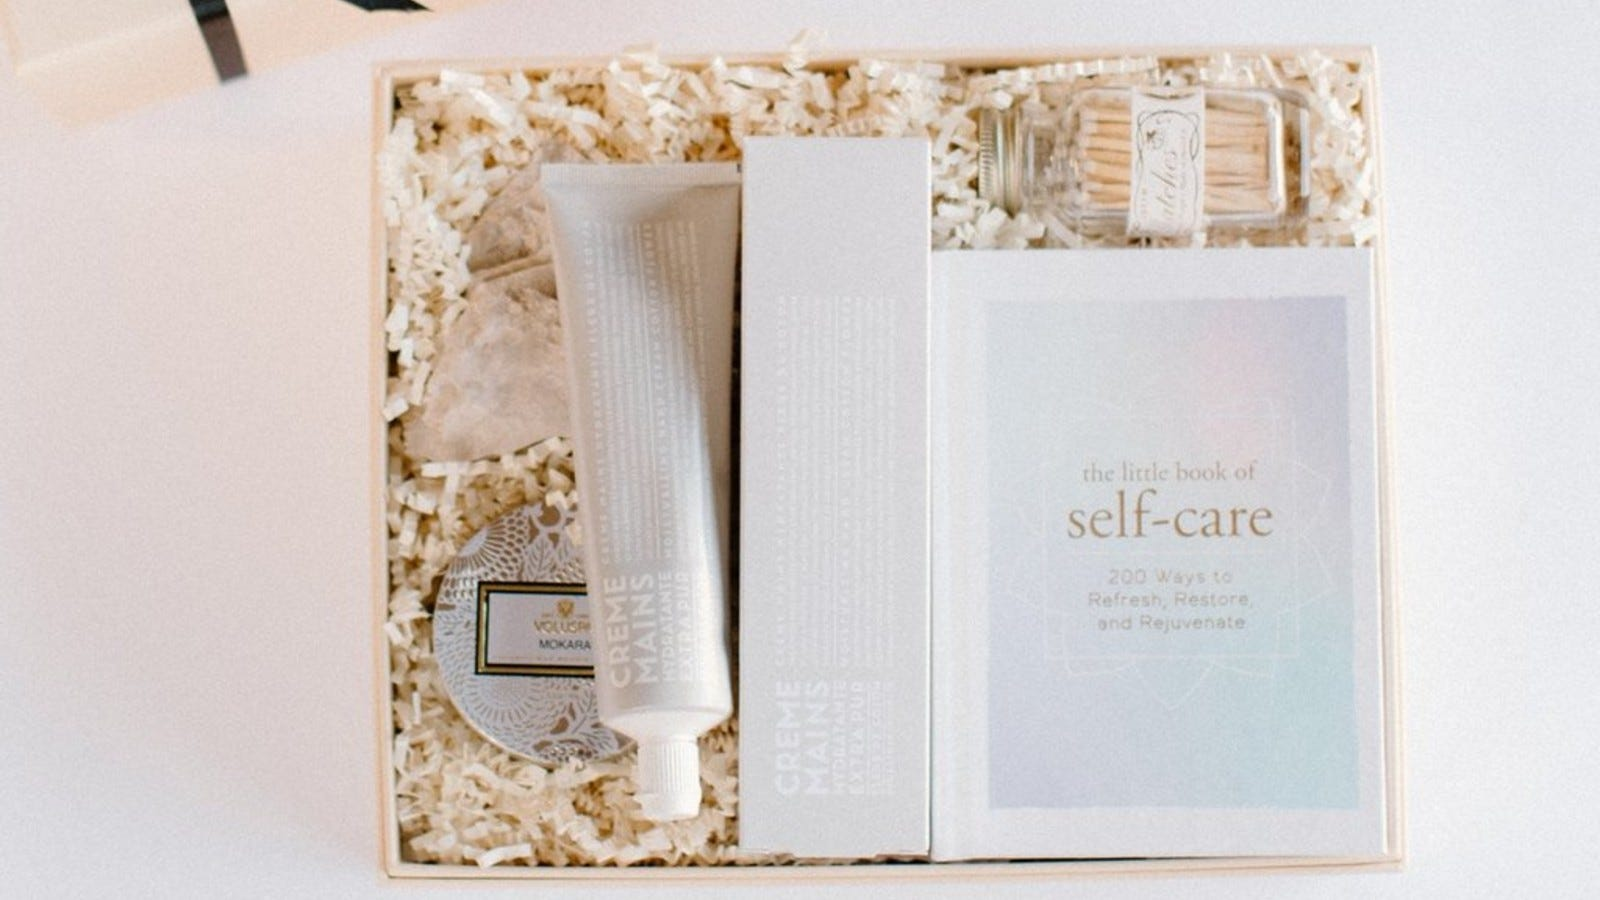 a light colored gift box with a self care book, a tube of hand cream, matches, and a candle